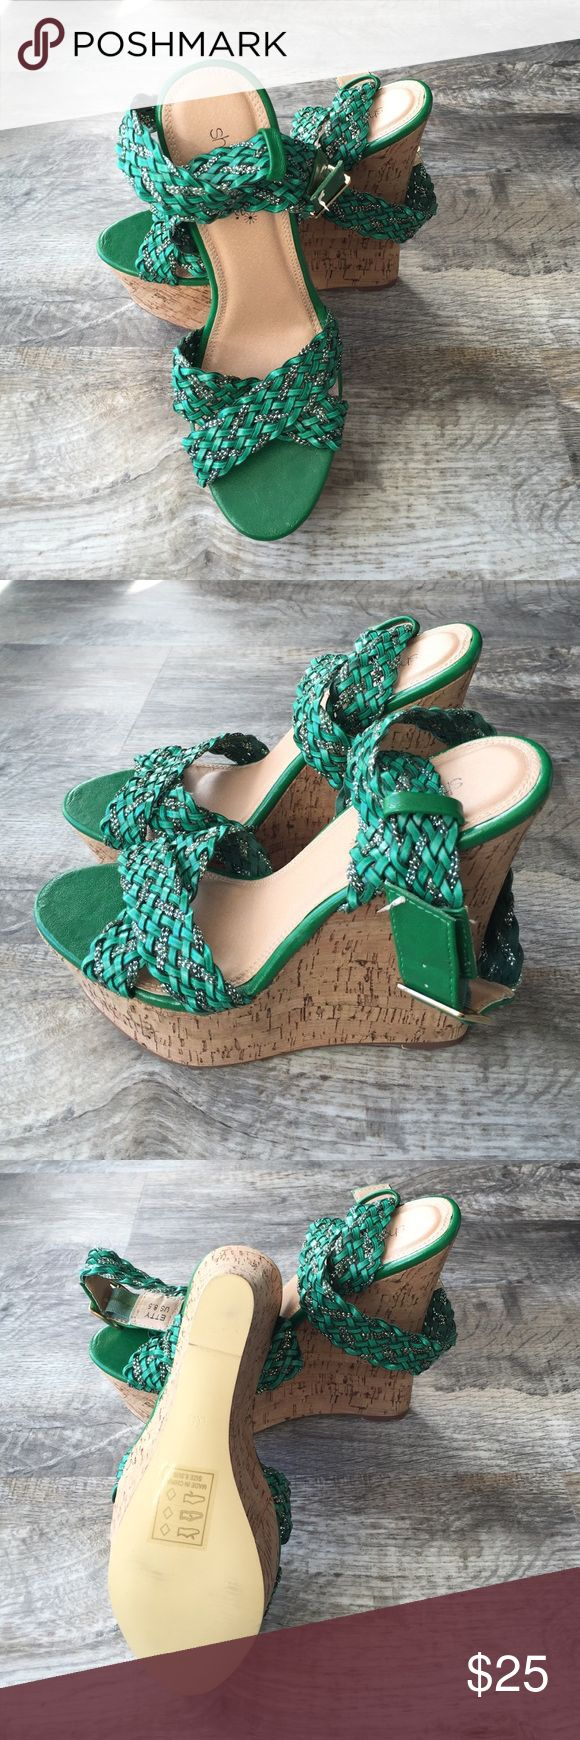 💋sale Shoe Dazzle wedge heels shoes sandals new Brand new shoe dazzle heels wedge shoes green and silver metallic . These are so awesome . They have a ankle wrap strap Shoe Dazzle Shoes